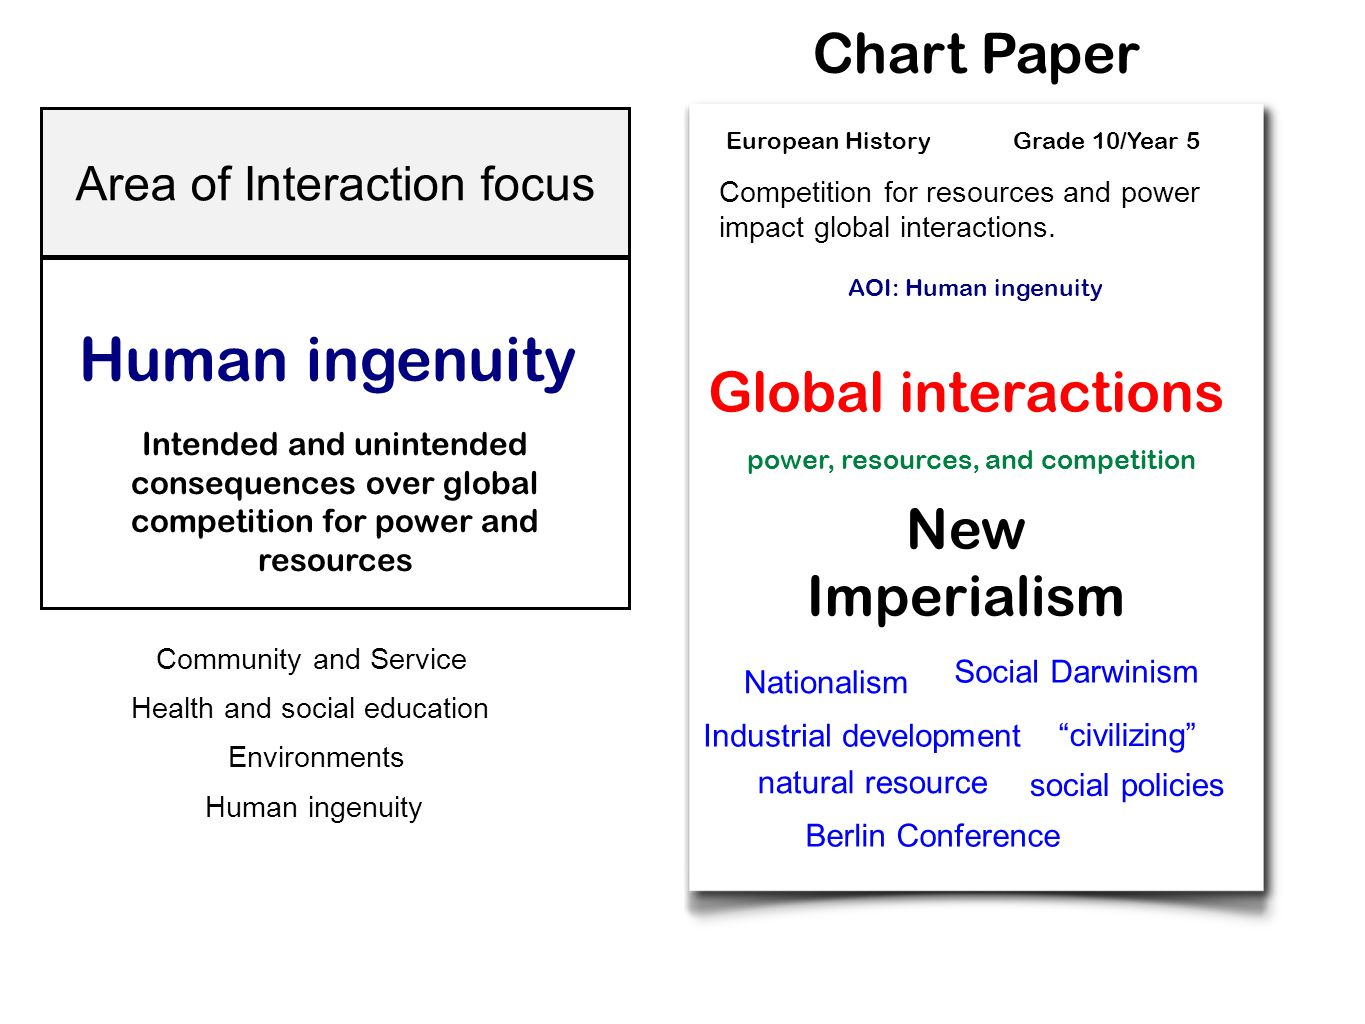 Human ingenuity Chart Paper Global interactions New Imperialism